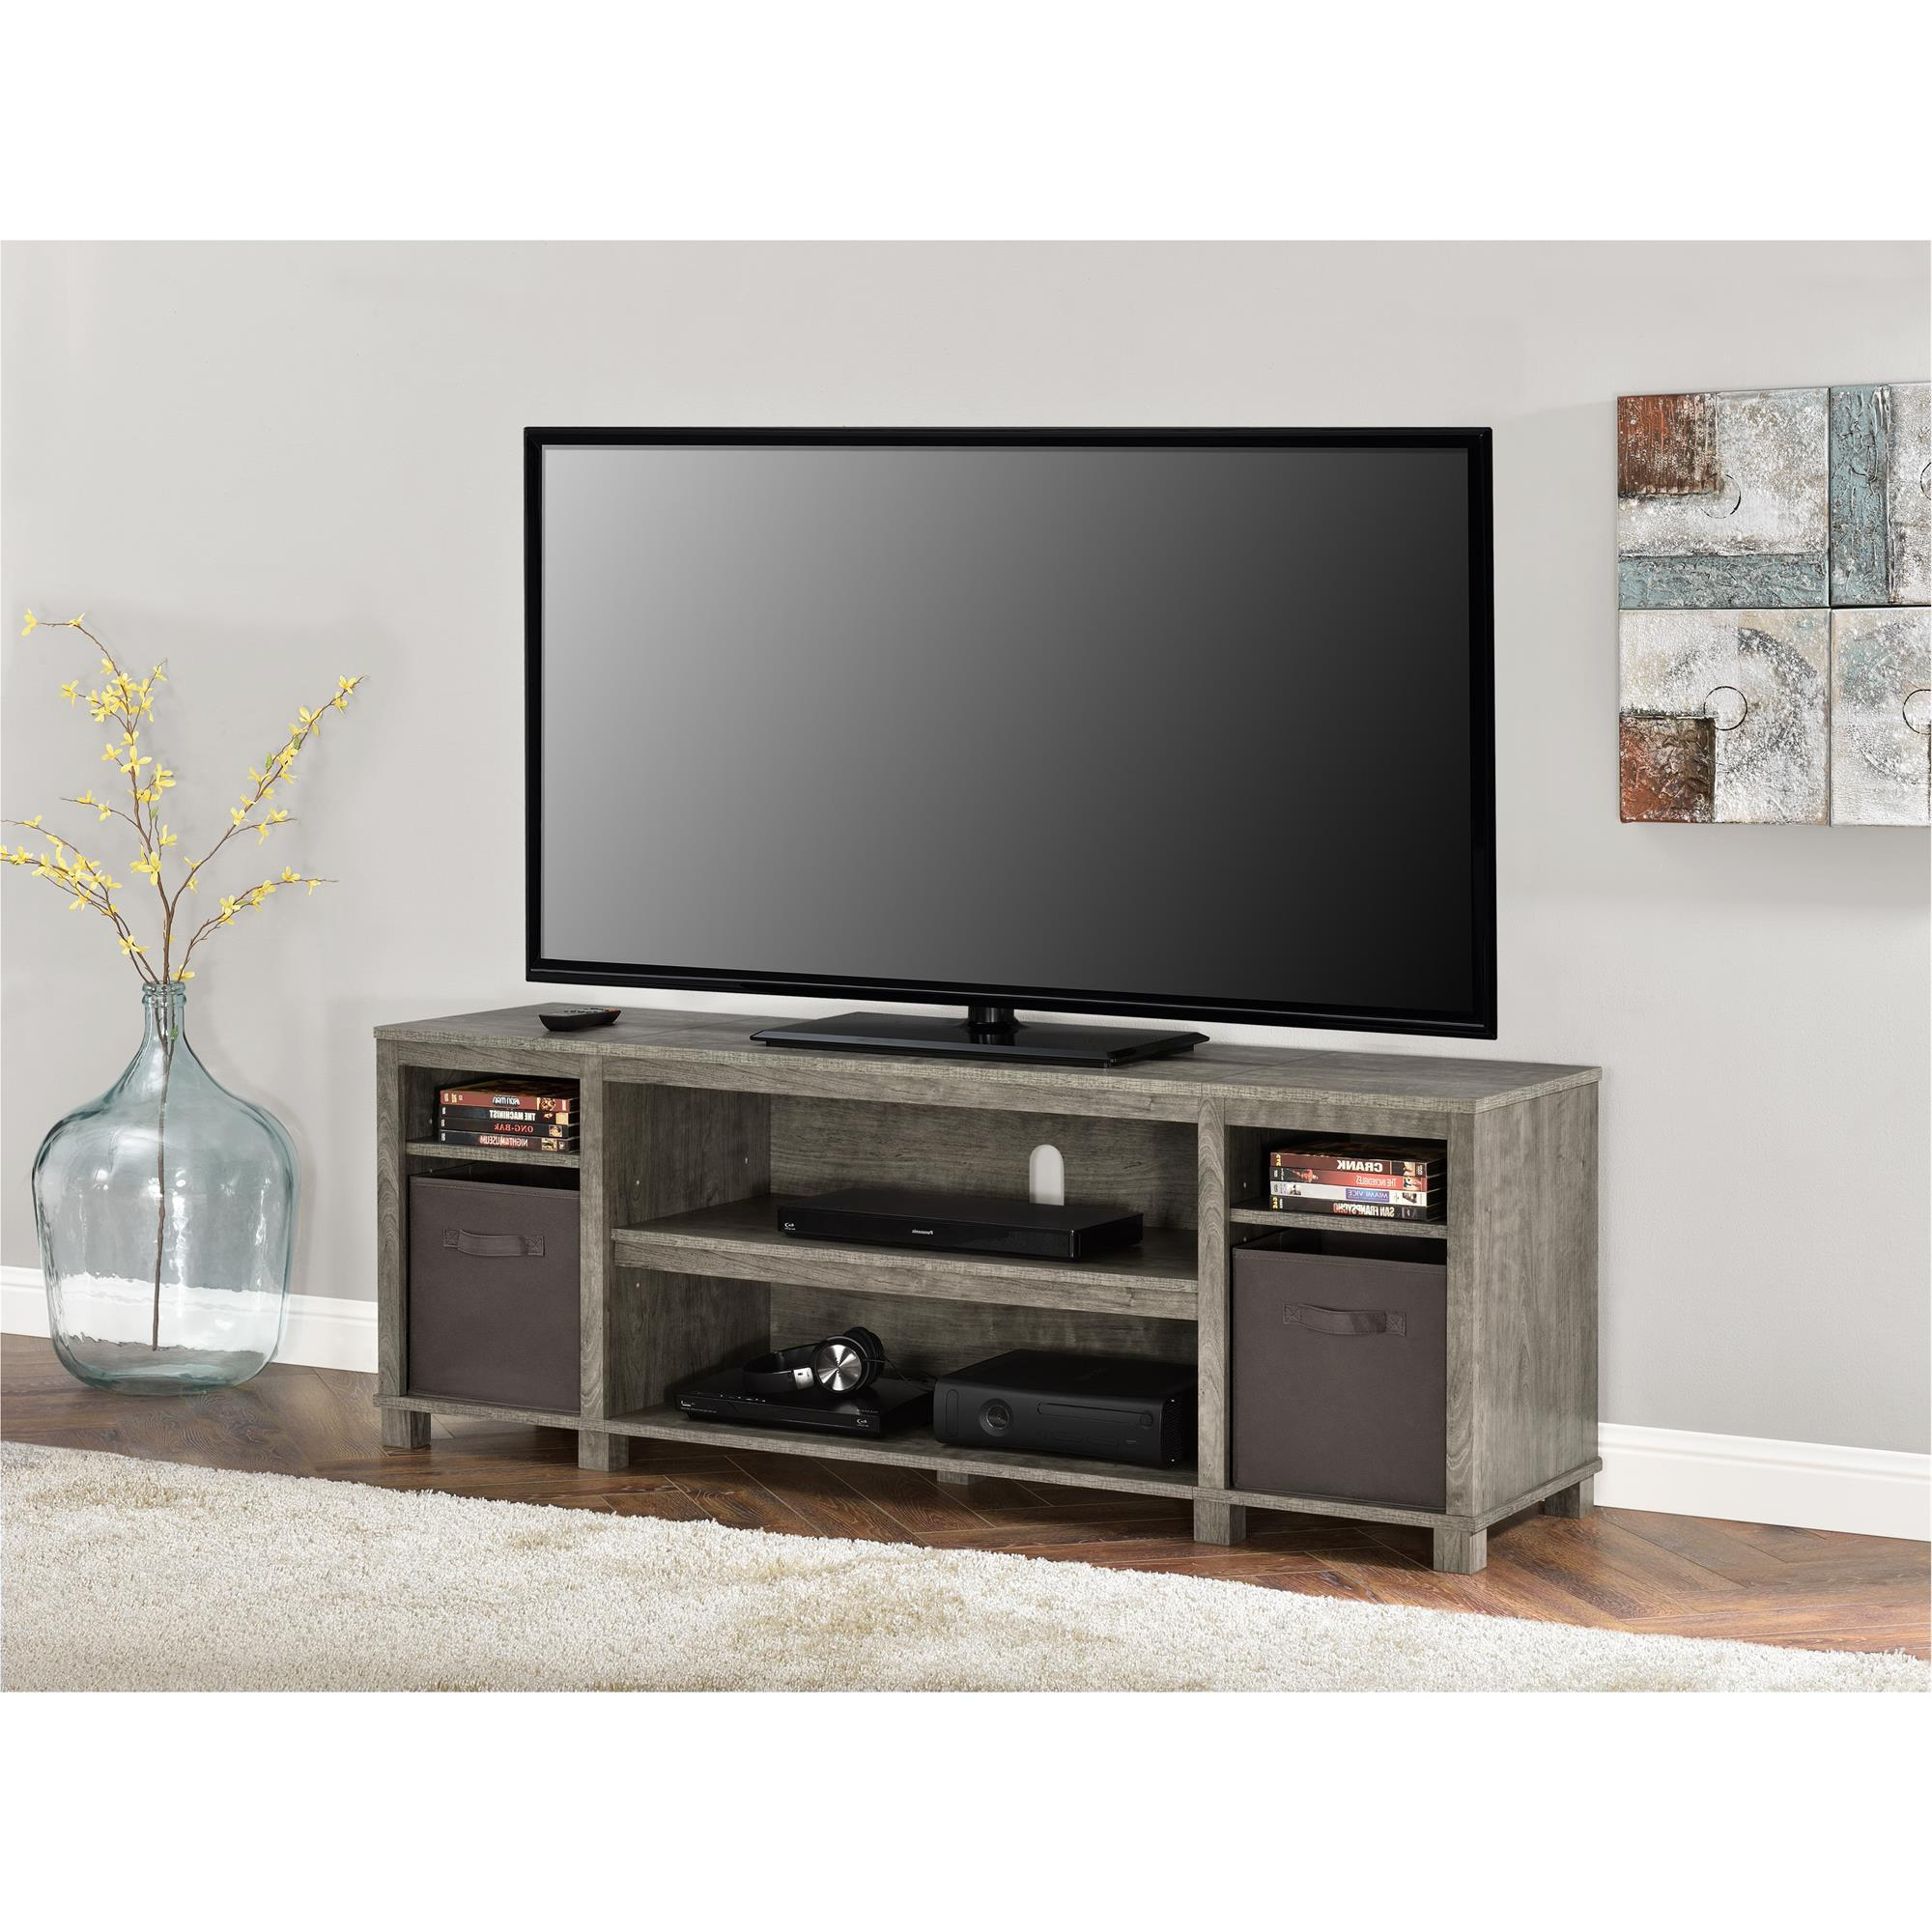 """Trendy Bloomfield Tv Stands For Tvs Up To 65"""" Within Mainstays Tv Stand With Bins For Tvs Up To 65"""", Multiple (View 14 of 20)"""